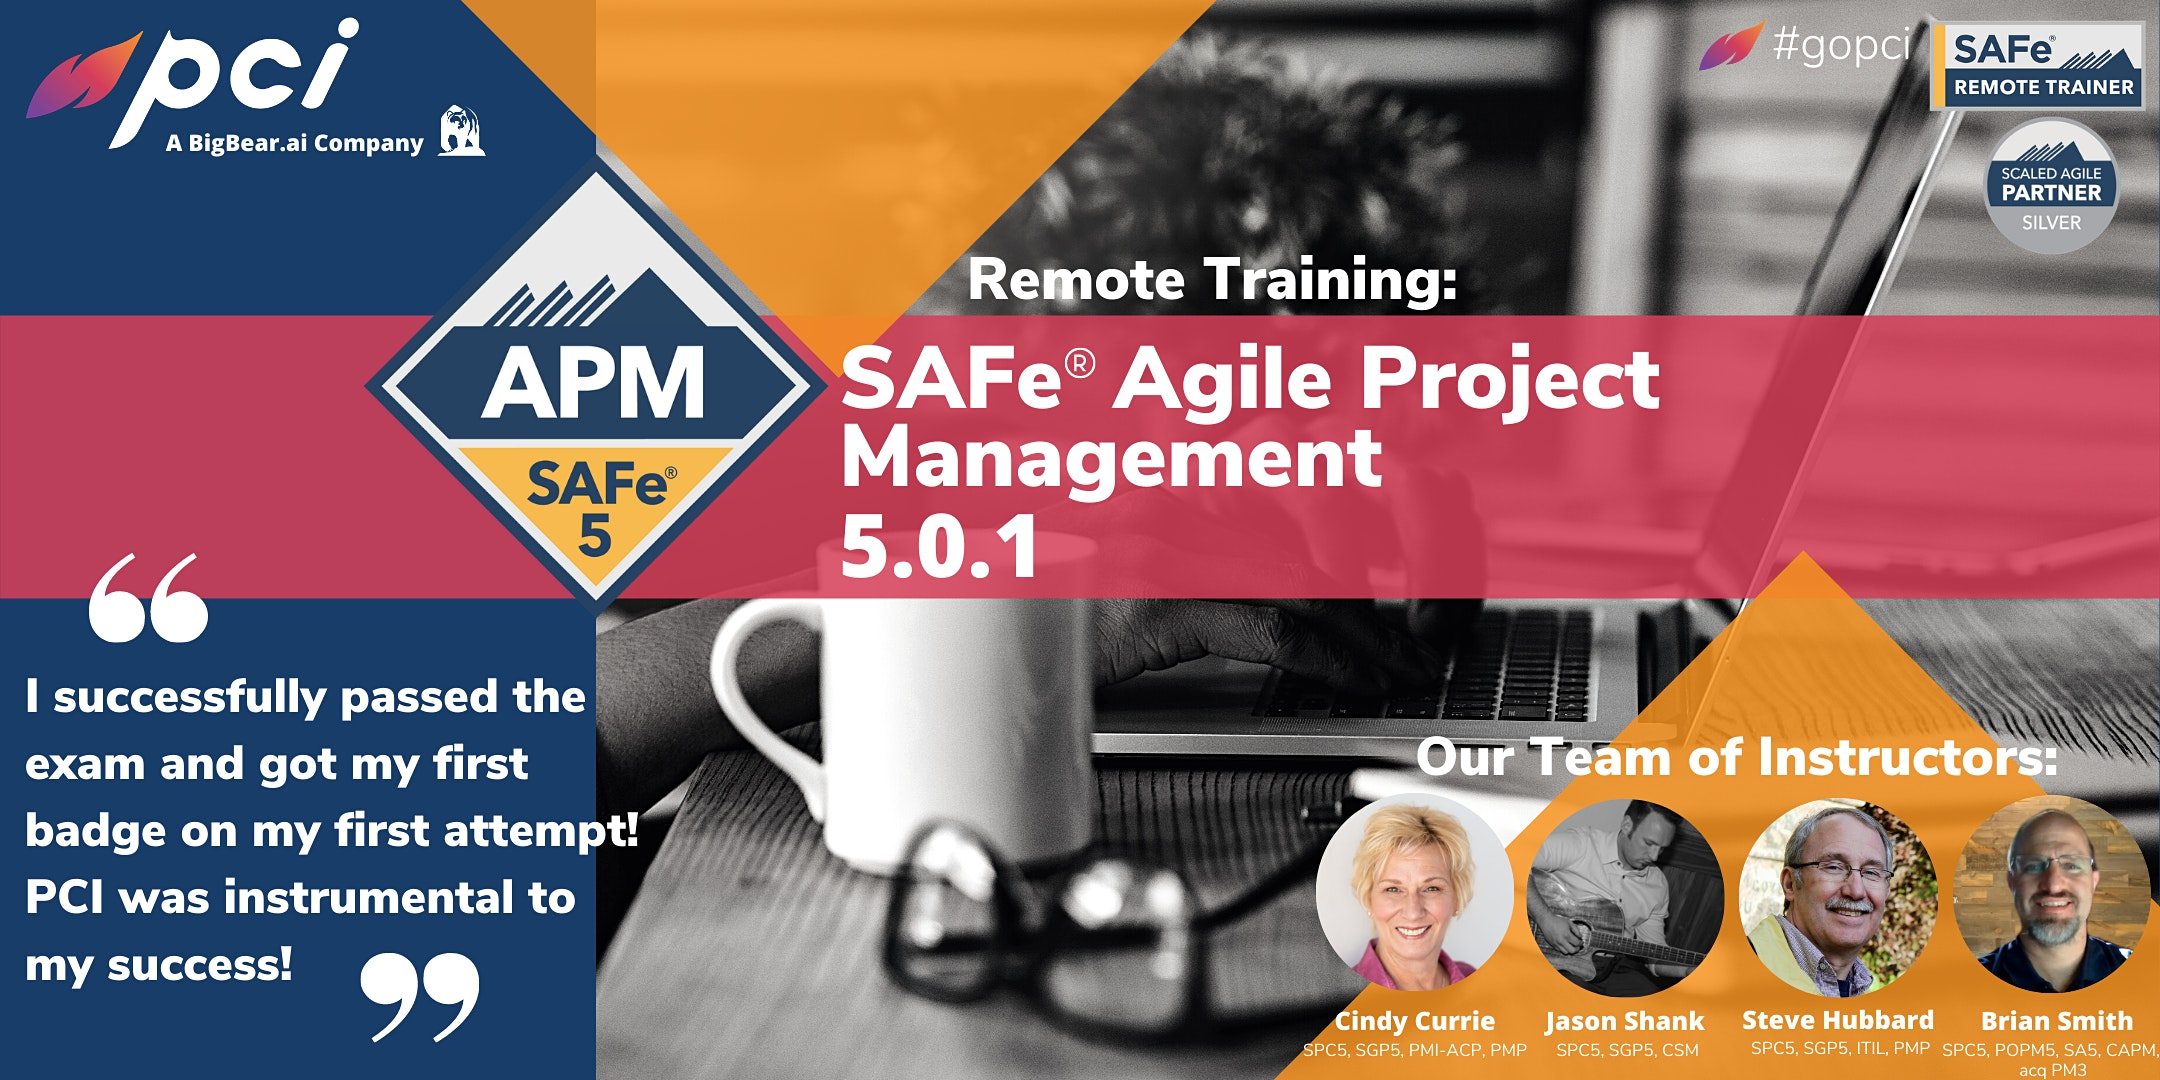 SAFe® Agile Product Management 5.0.1 – Remote